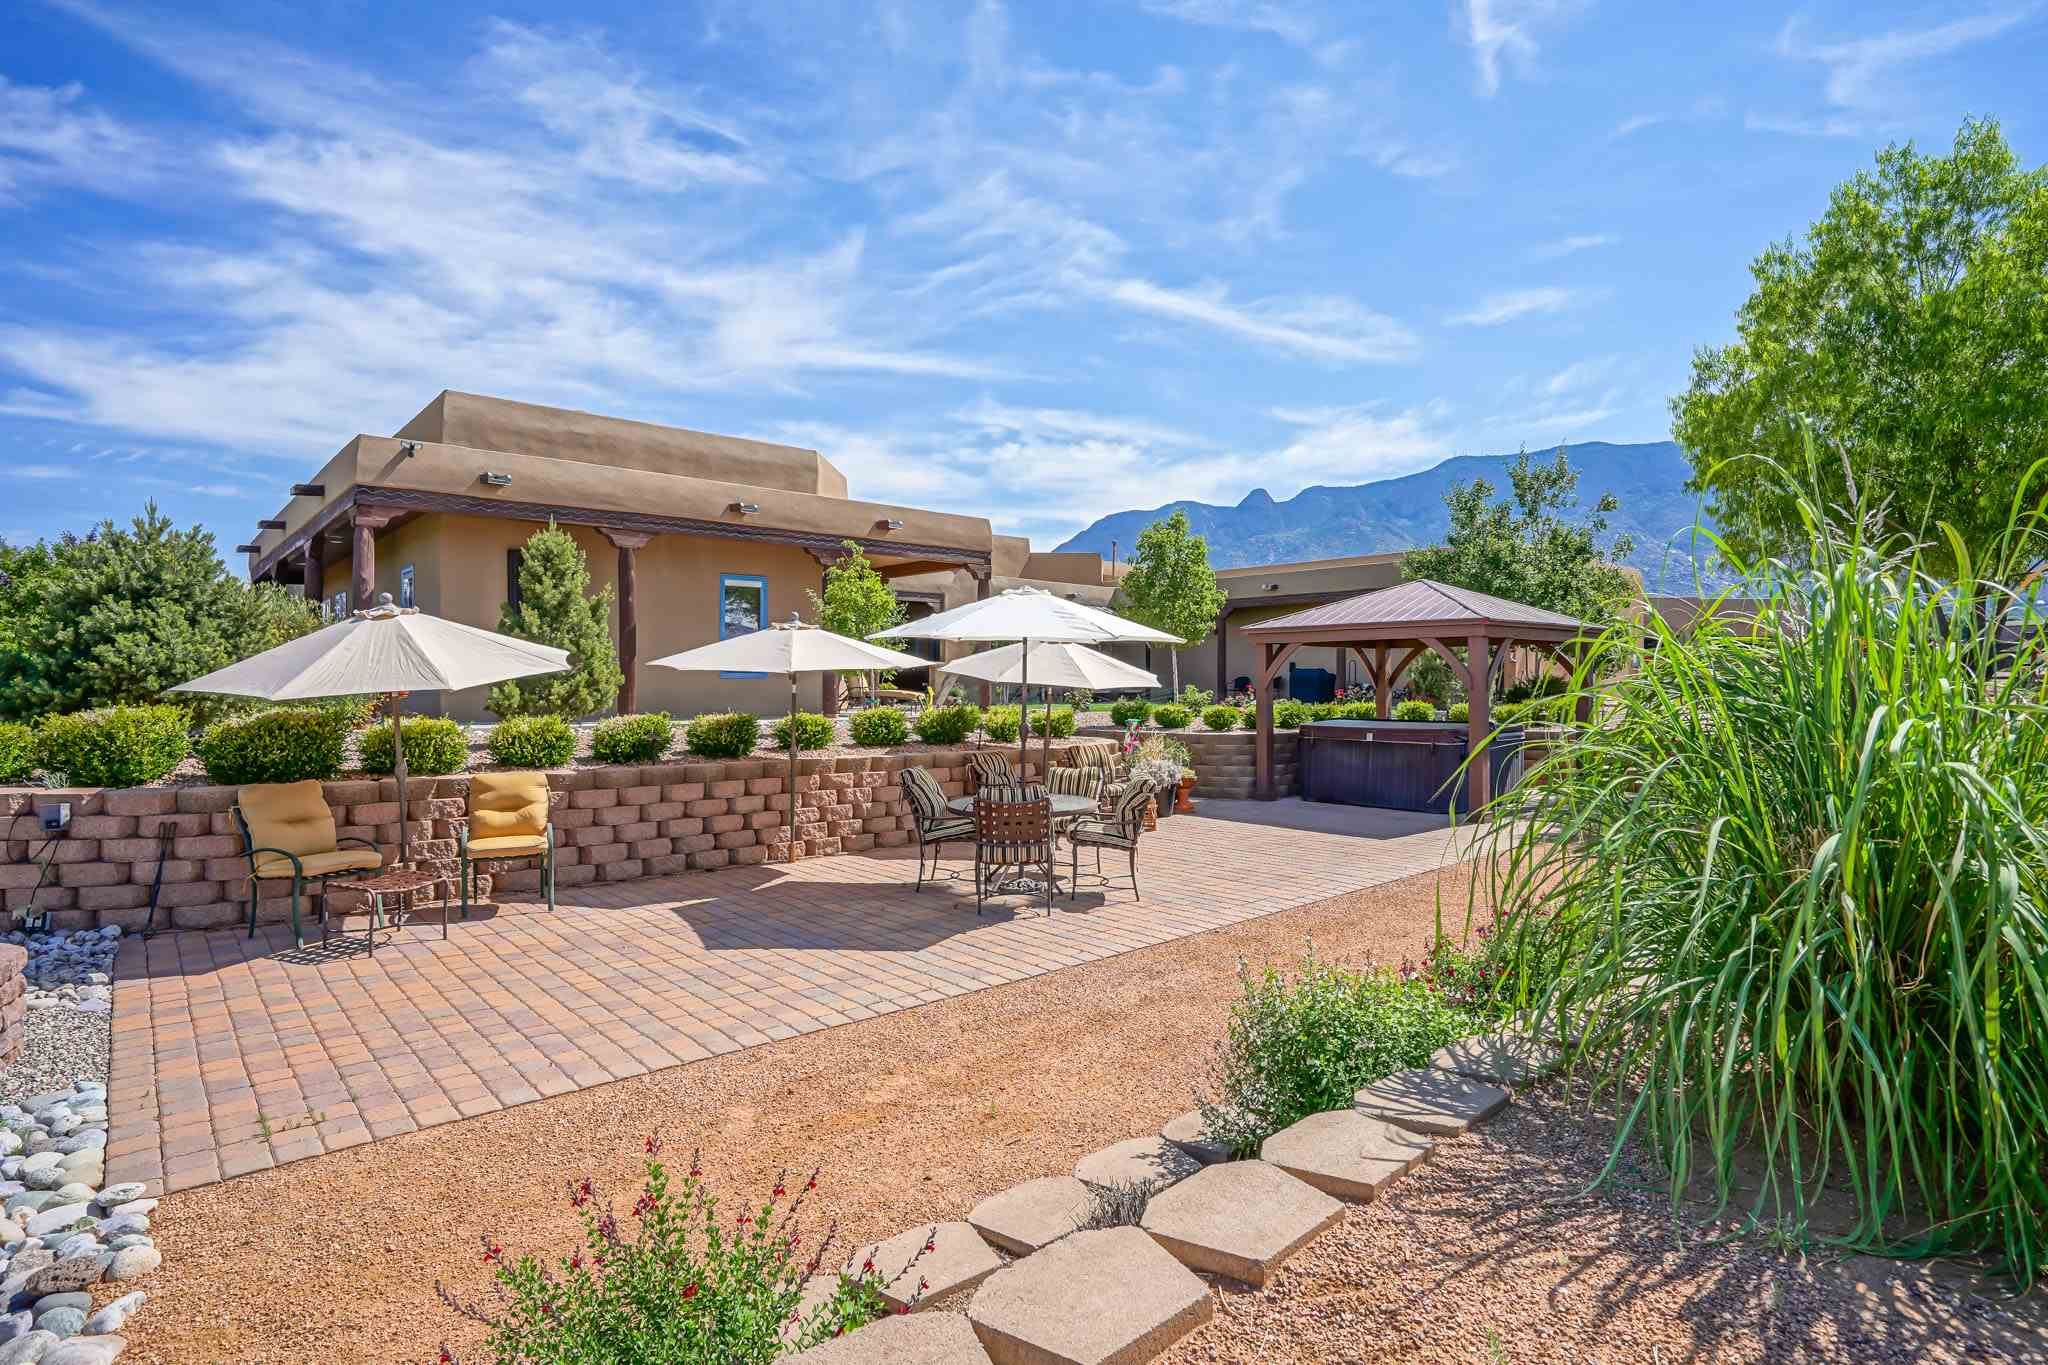 Open House Sun 2/21 1- 3 pm. Gracious Classic Santa Fe Style Hacienda on .89 North Abq Acres. Whole casa warm brick radiant heated floors,4 Kiva fireplaces, 5 bdrms, 3+ car garage, Pella wood windows, artisan woodwork, hand carved doors & posts, furniture quality handcrafted soft close dovetail cabinetry, wide wood trim, silver finials. Owners retreat like none other: 2 way fireplace, attached den and exercise space, beamed ceiling, dbl sinks, jetted tub, travertine shower, walk-in closet. Fully appointed Chef's entertaining kitchen, pot filler, 4 Wolf ovens, 4 burners + griddle/grill, Sub-Zero Side by Sides, huge butler's pantry with built ins. Outdoor kitchen playground, Wolf grill, wood burning Kiva, TV, pergola covered spa. Balloon Fiesta Views! Cable/ethernet in every room + IT room